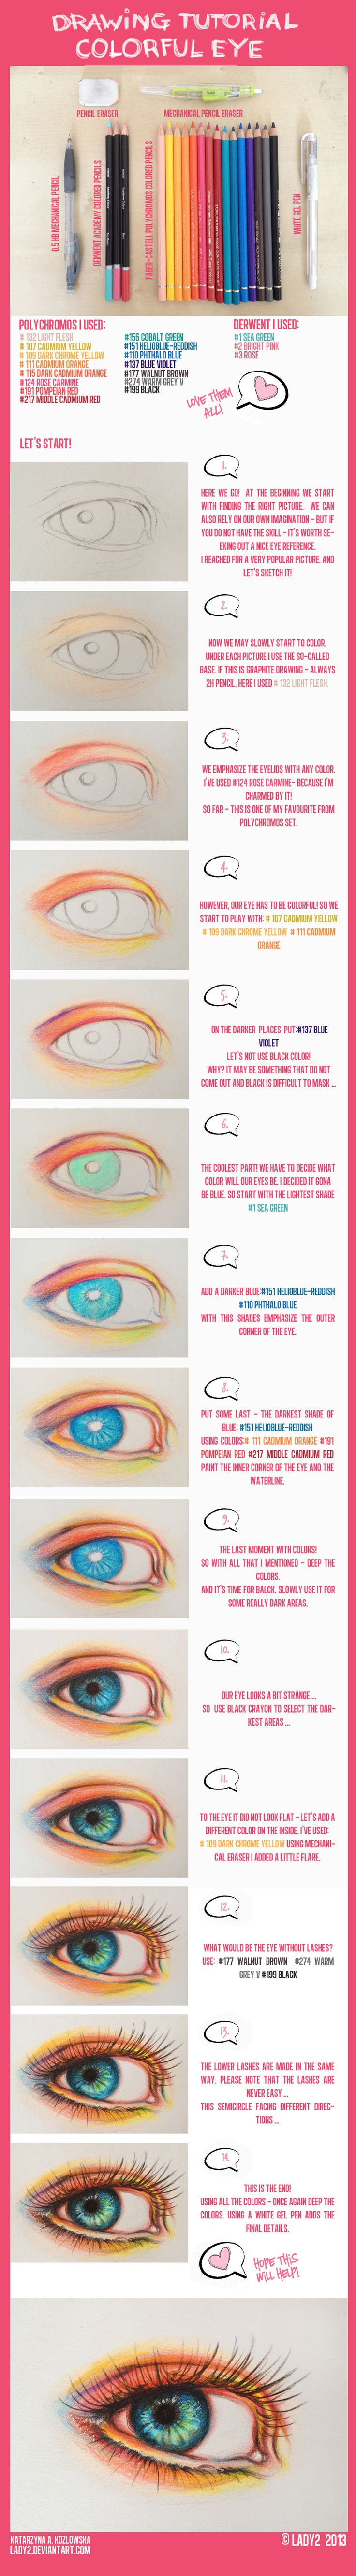 colored pencil tutorial, drawing an eye.